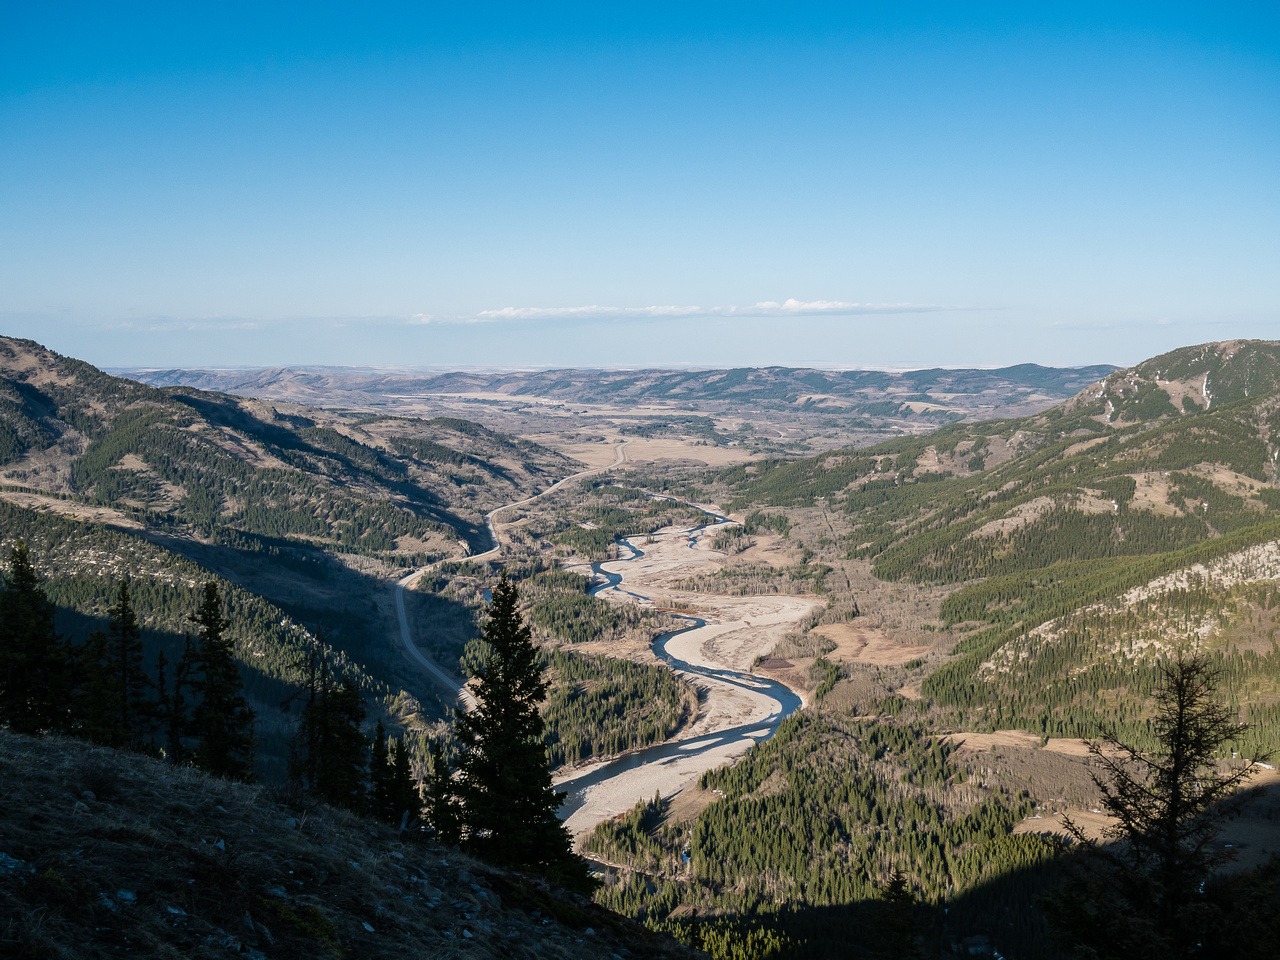 Looking over the Highwood River, through Eyrie Gap towards Eden Valley and the Prairies east of the Rockies.